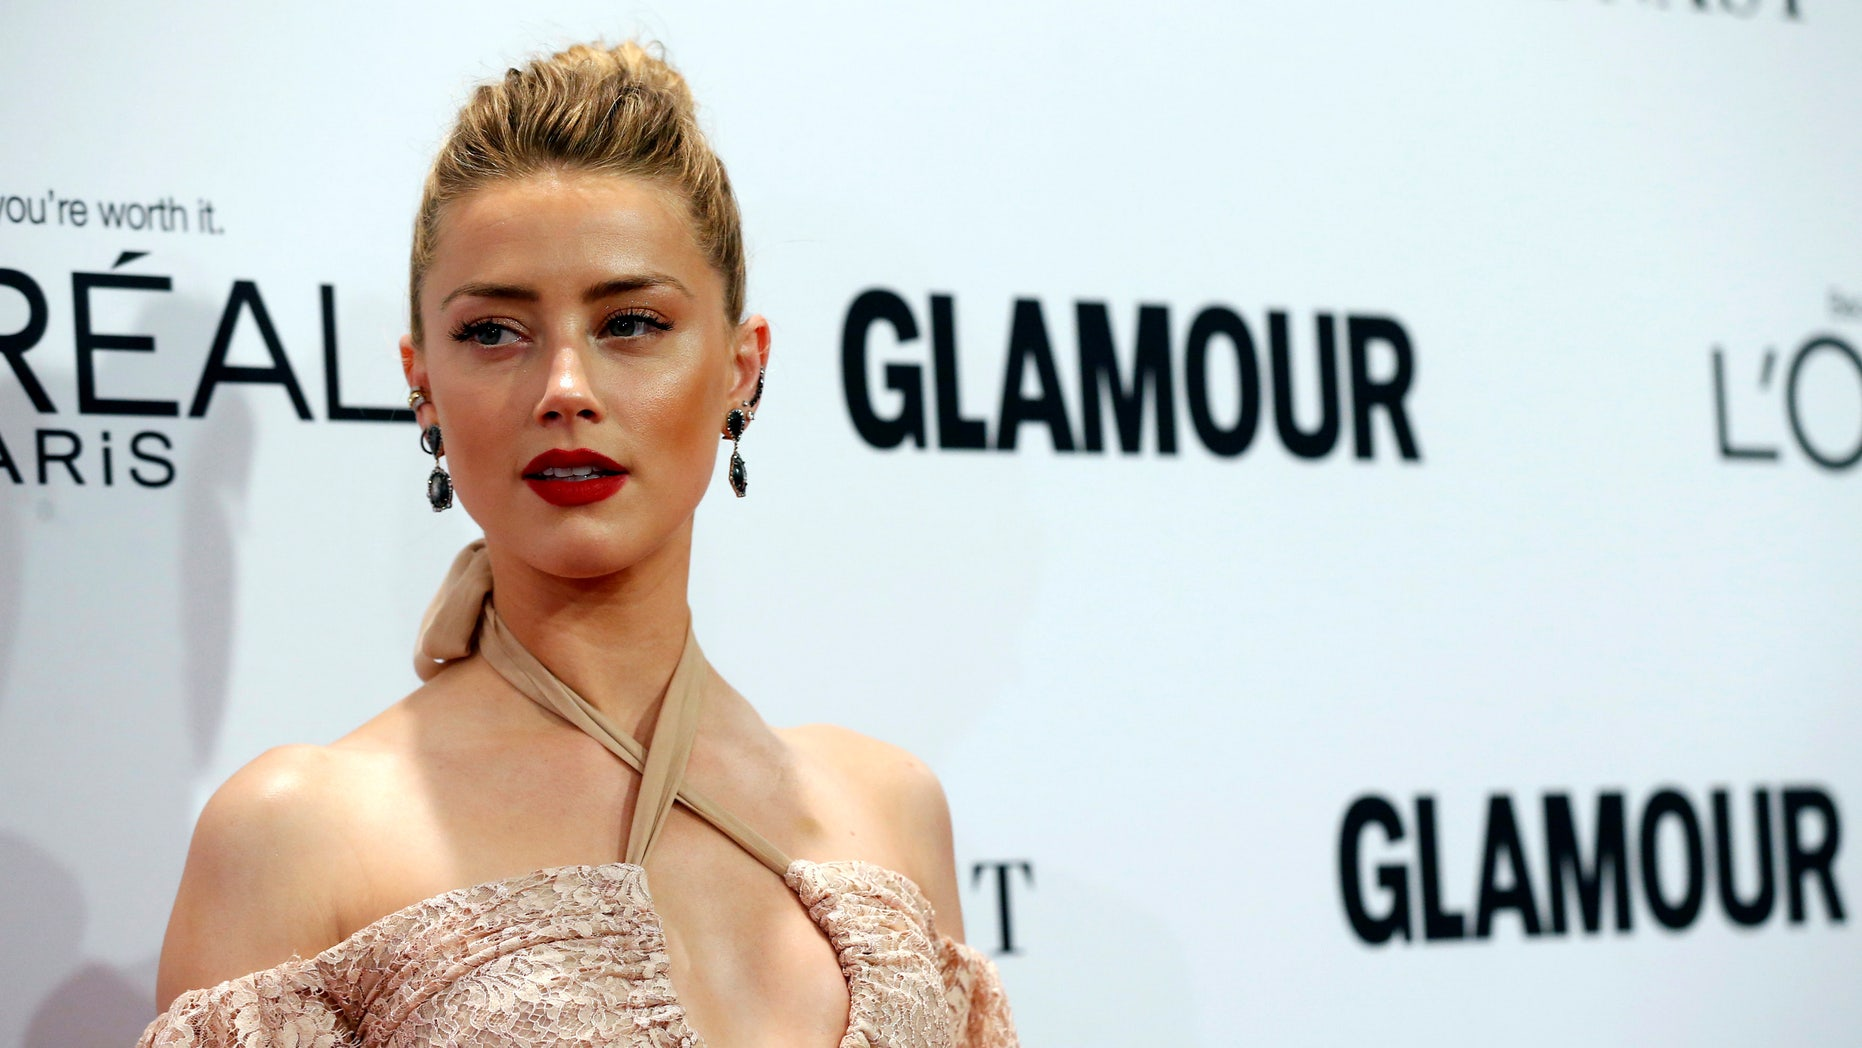 Amber Heard poses at the Glamour Women of the Year Awards in Los Angeles, California, U.S., November 14, 2016.